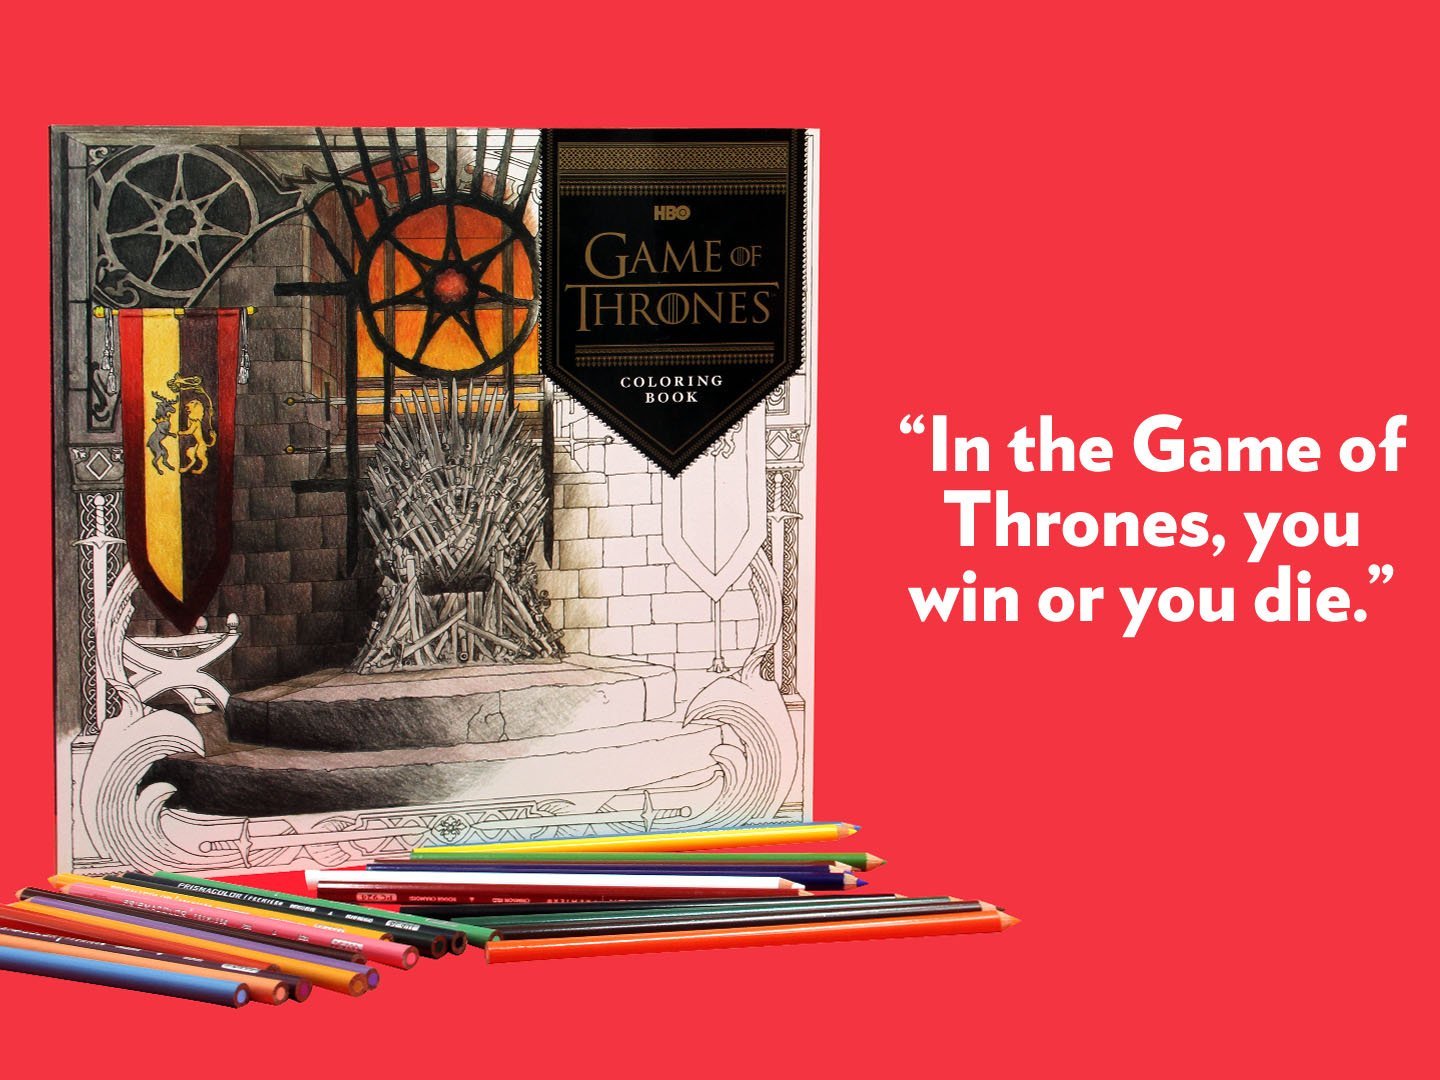 Co coloring books game - Book Store On Twitter Nbsfinds A Game Of Thrones Coloring Book By Grrmspeaking Available For P875 In National Book Store Https T Co Fmnkqrlpoq